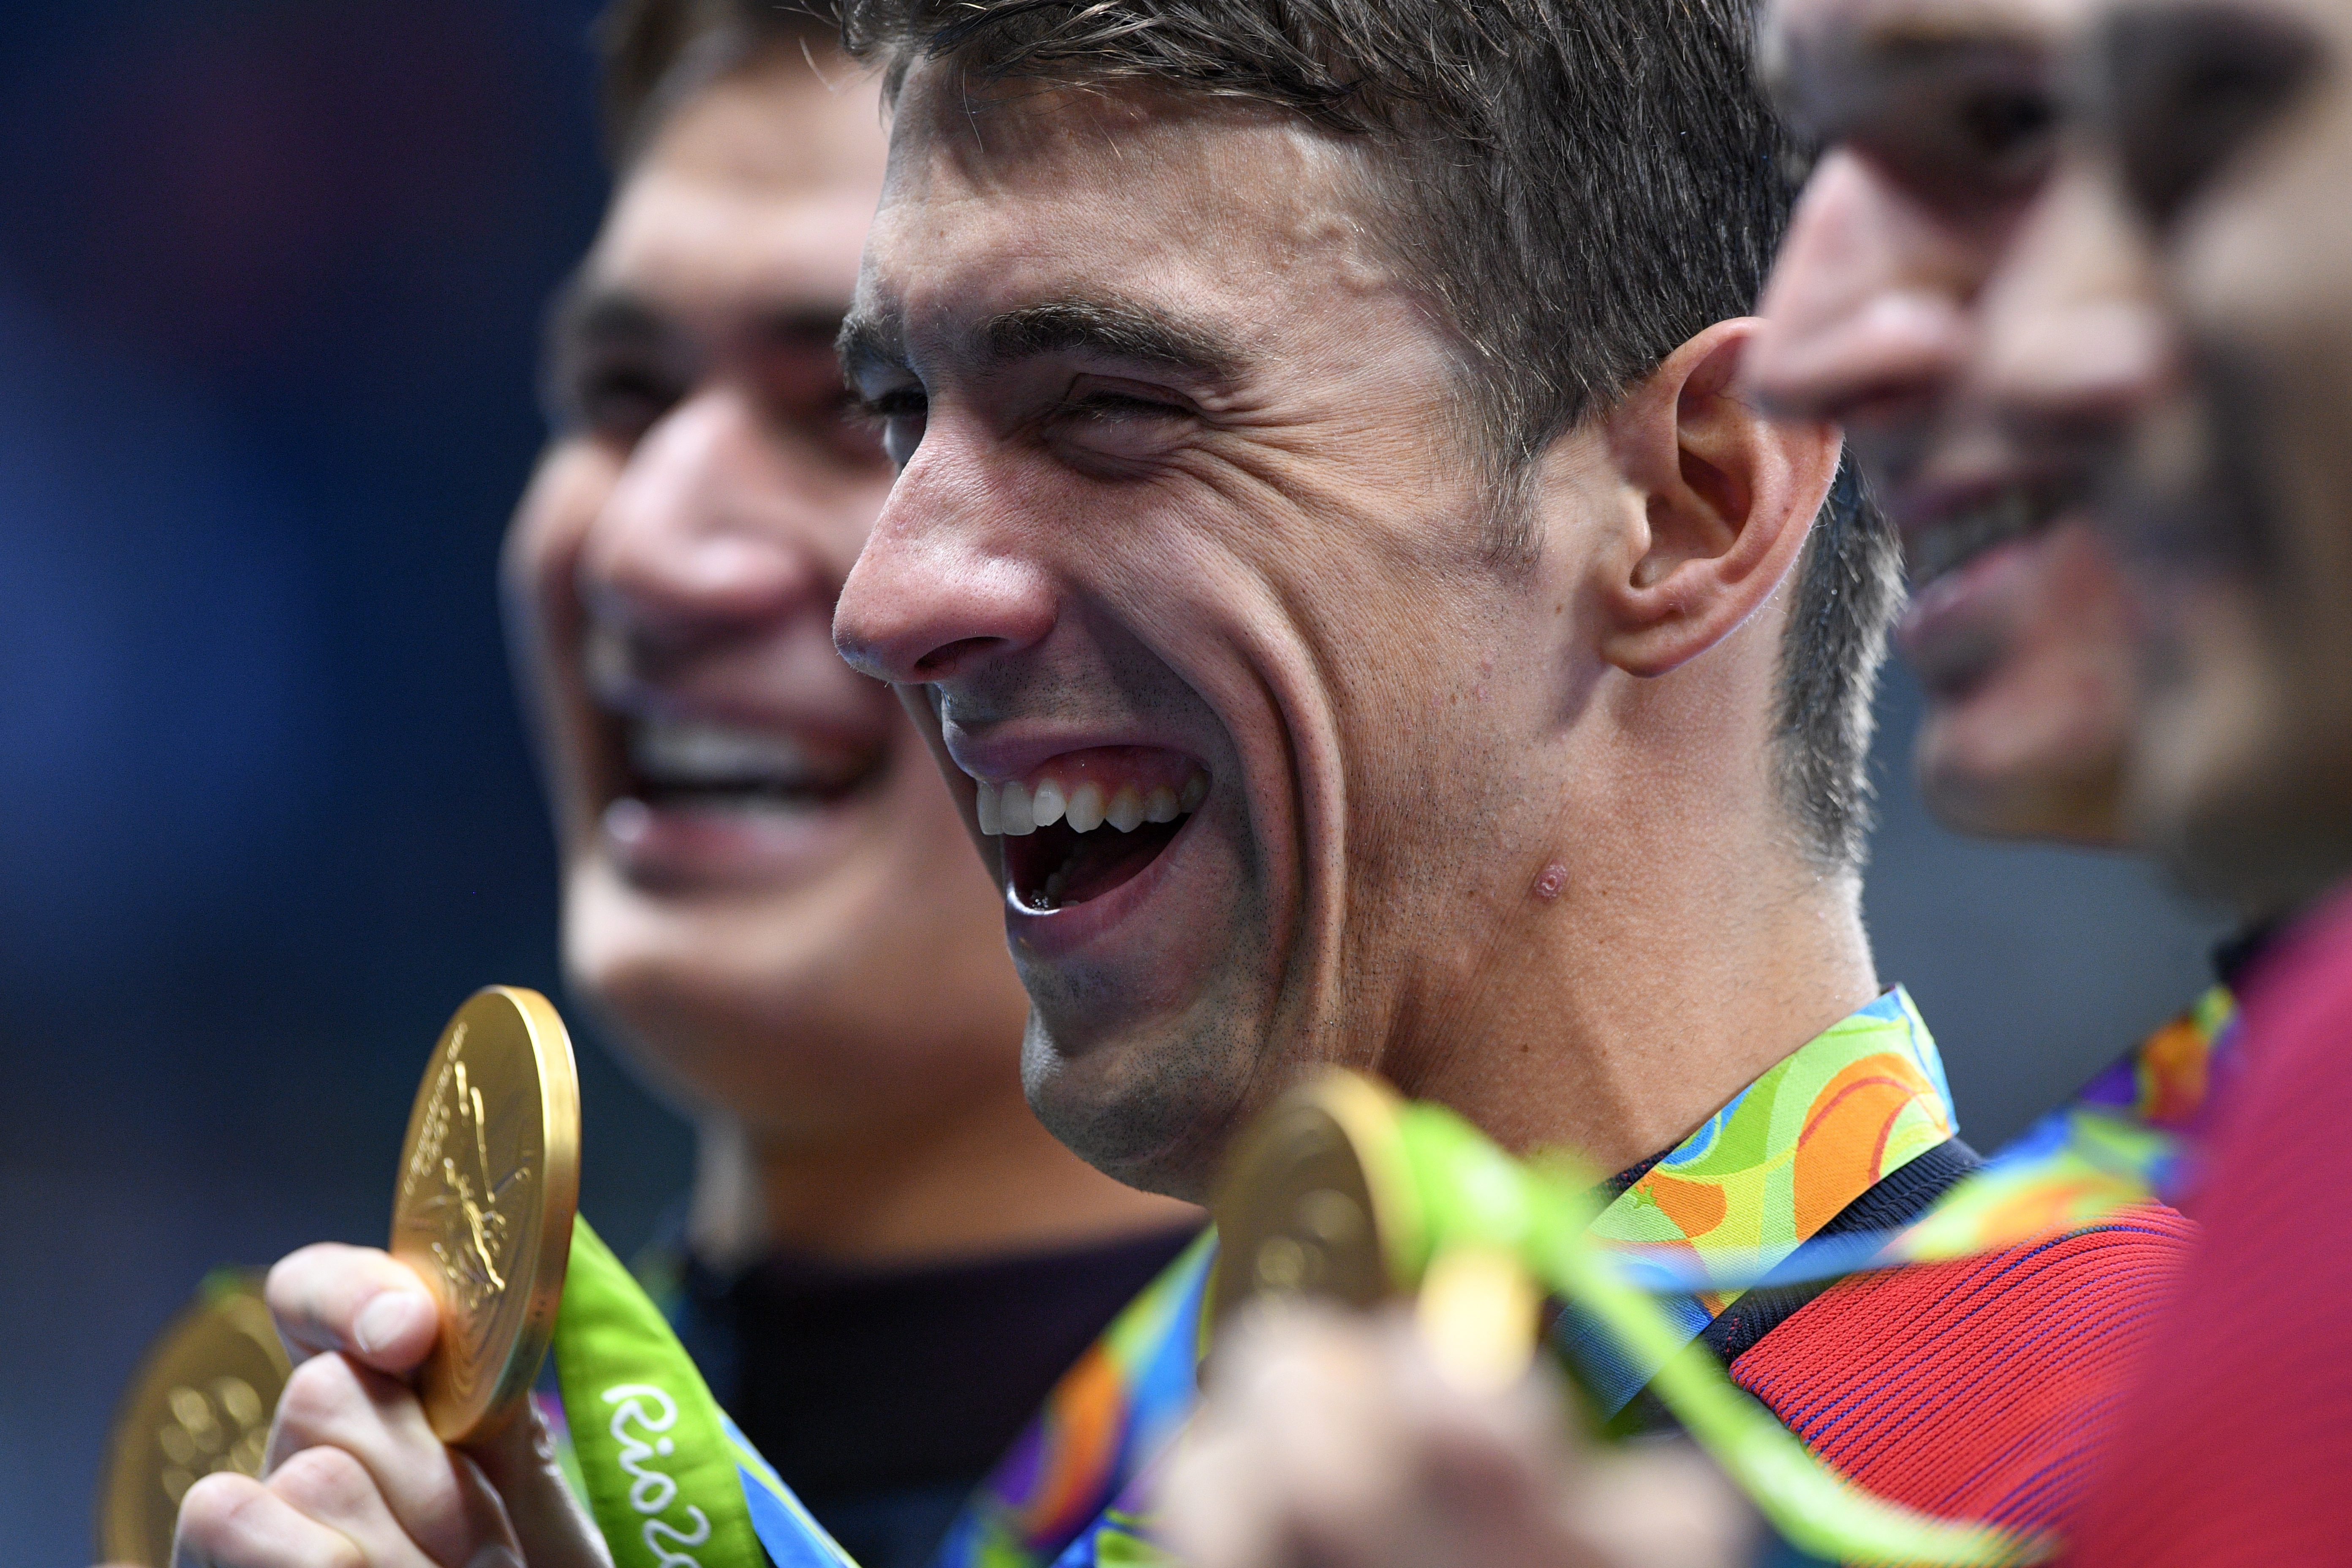 United States' Michael Phelps celebrates with teammates during the medal ceremony for the men's 4 x 100-meter medley relay final during the swimming competitions at the 2016 Summer Olympics, Sunday, Aug. 14, 2016, in Rio de Janeiro, Brazil. (Sean Kilpatri